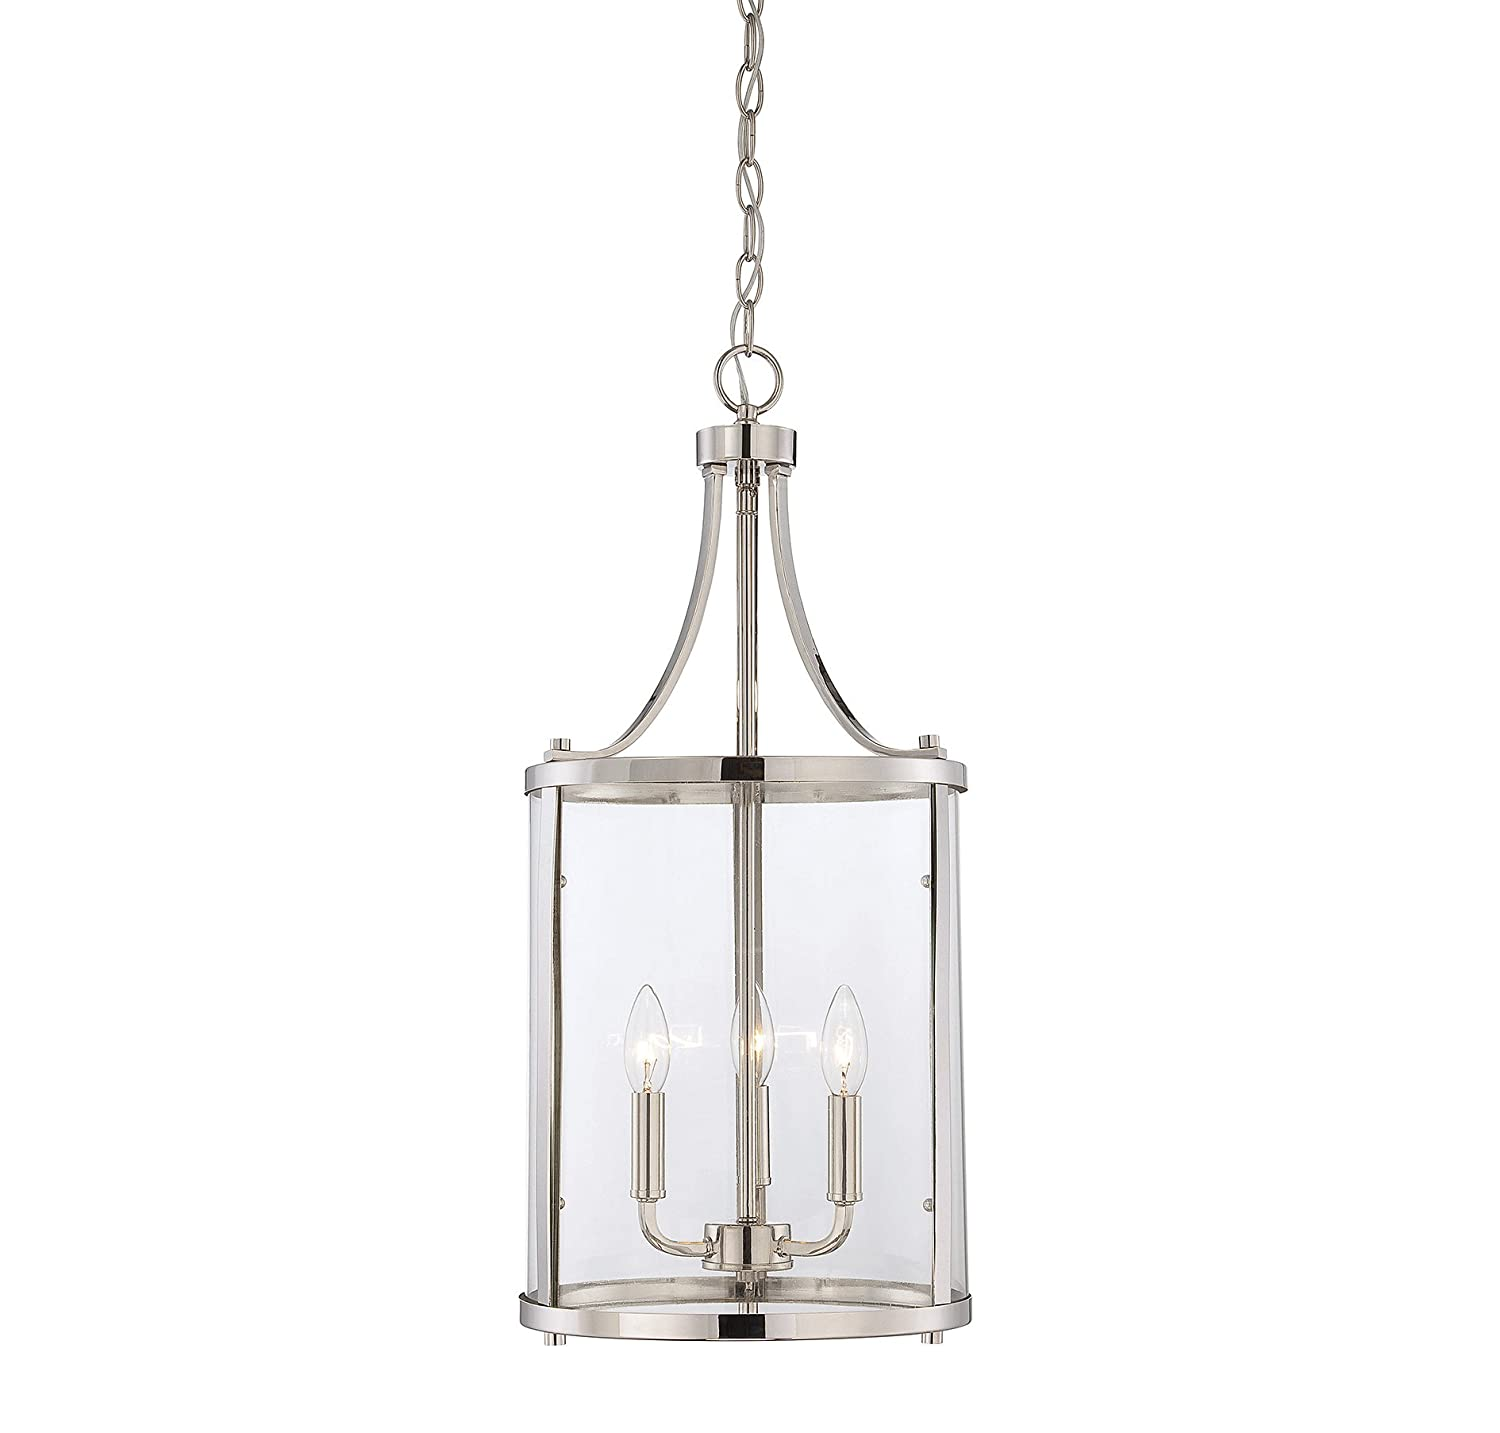 distressed light shown and cfm glass inch in finish item madeliane wide savoy chandelier lighting magnifying white house wood iron image